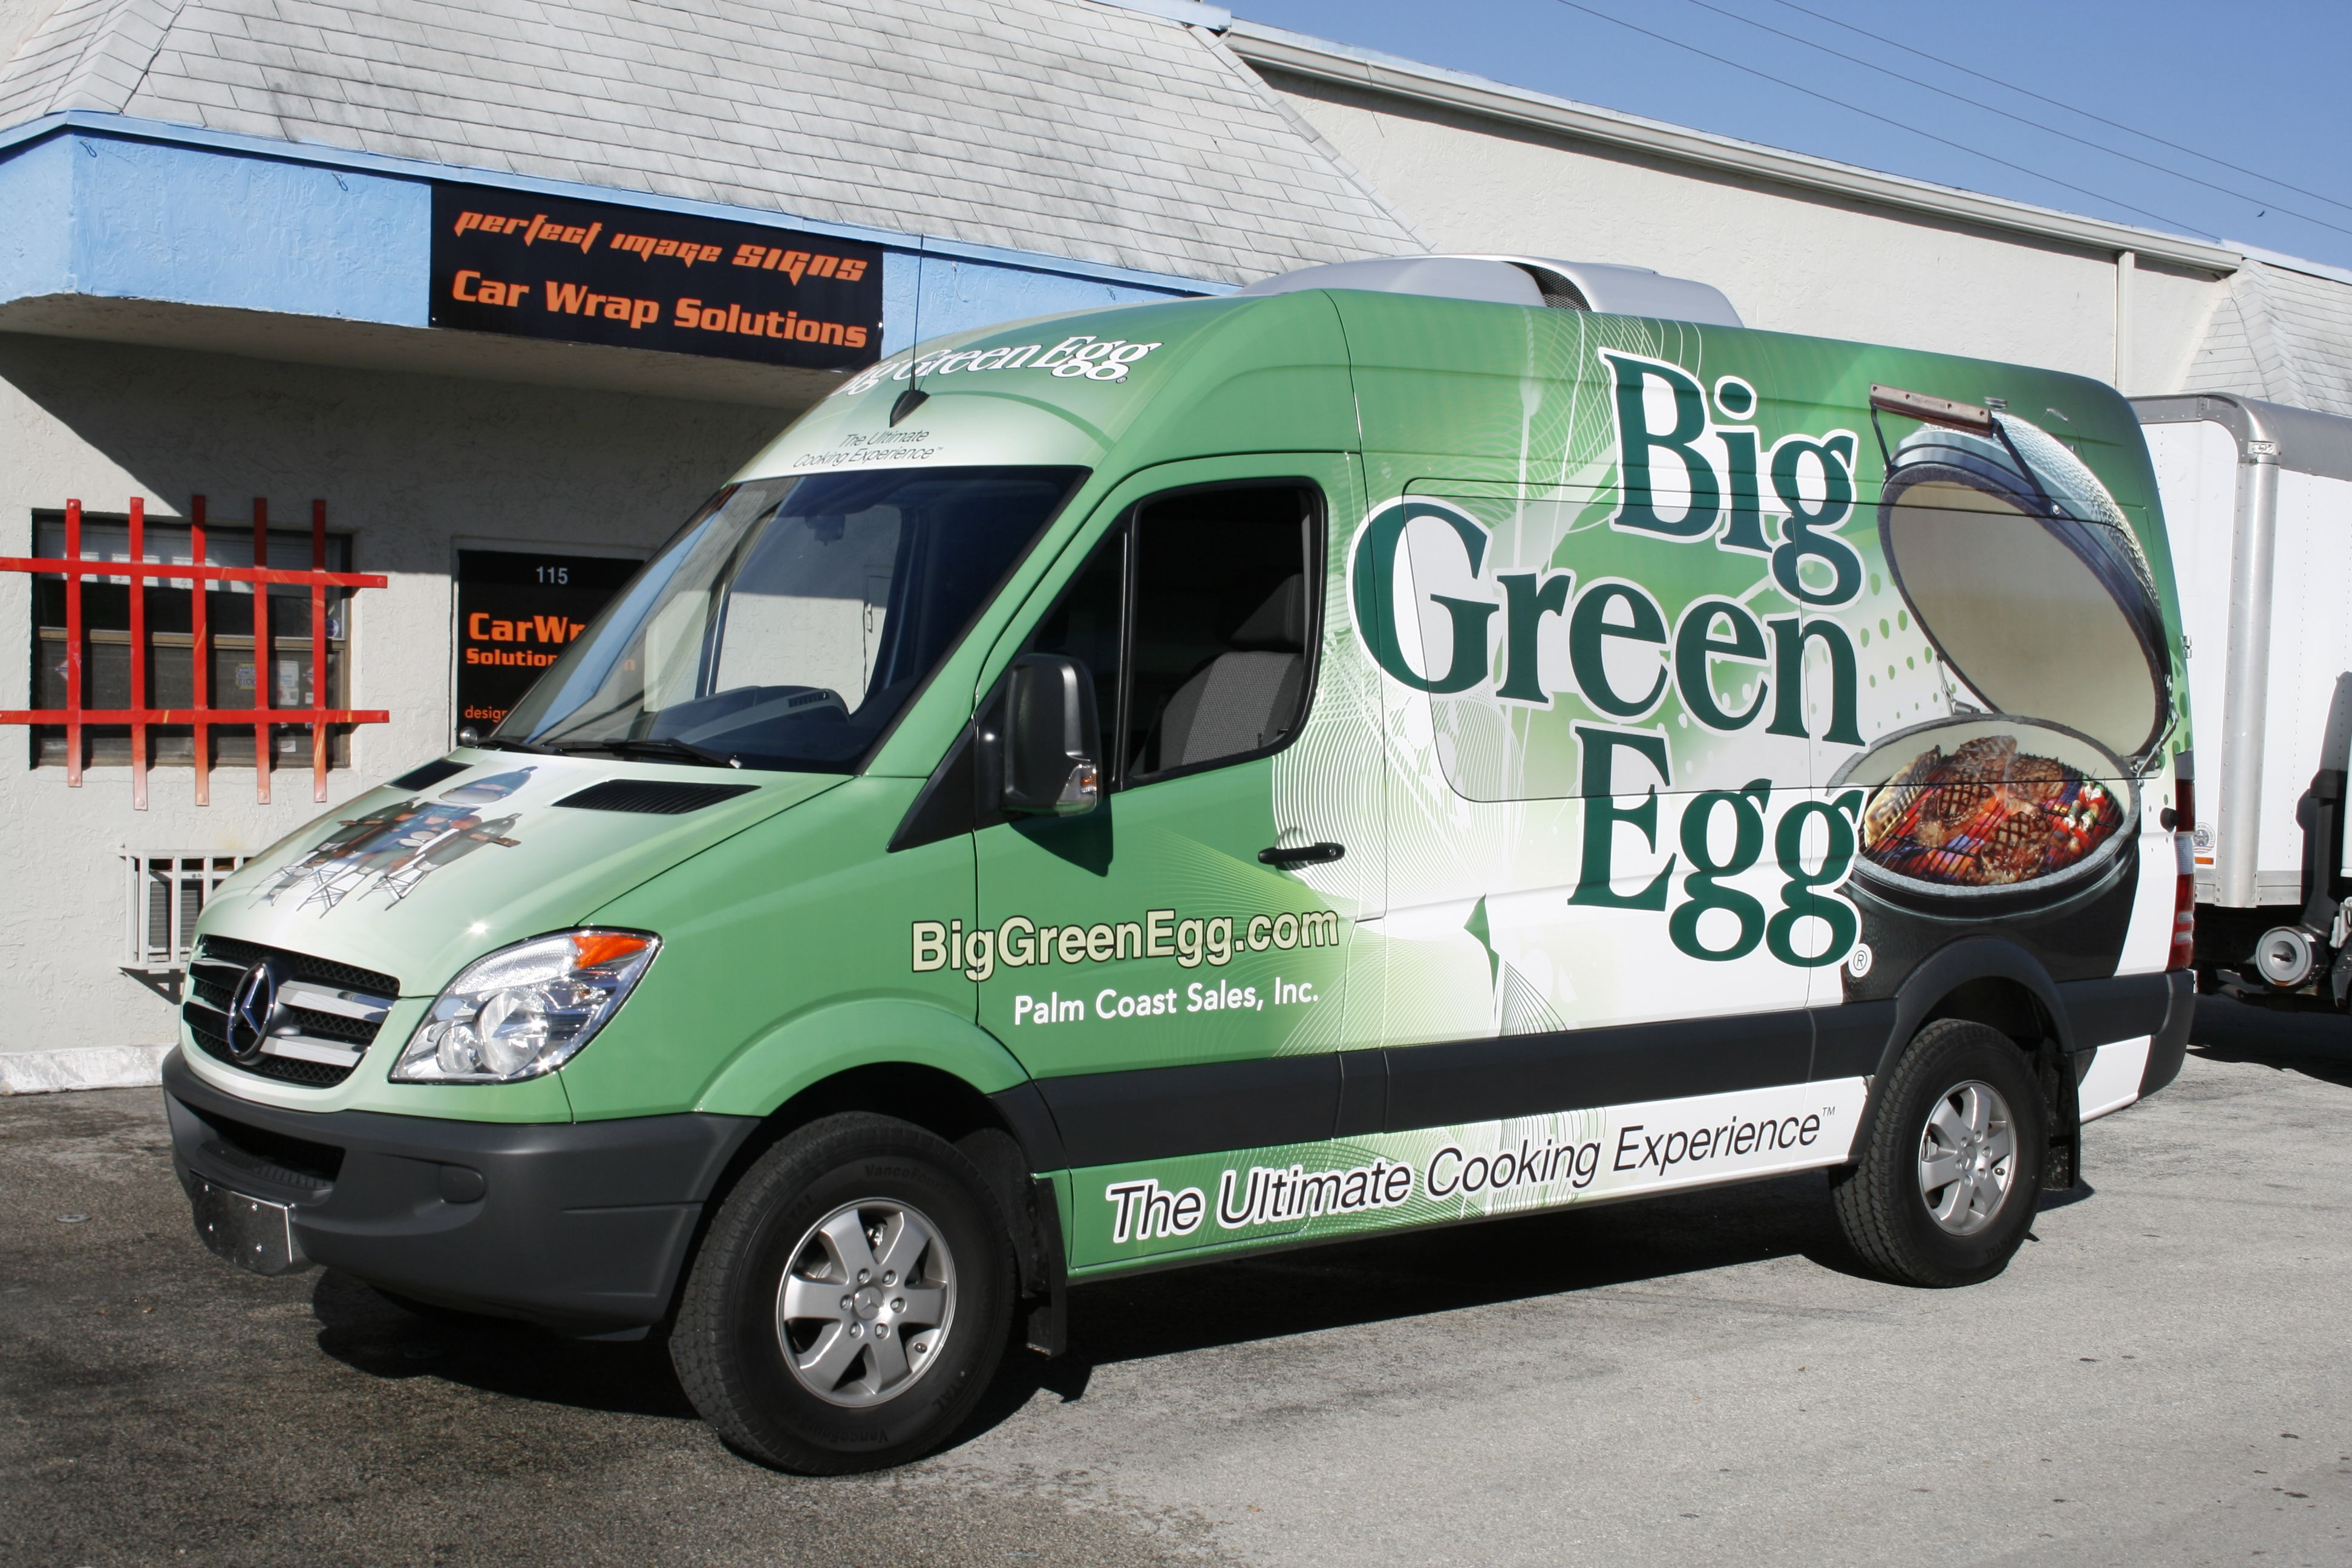 Mercedes benz sprinter van vehicle wrap for big green egg in jupiter florida http